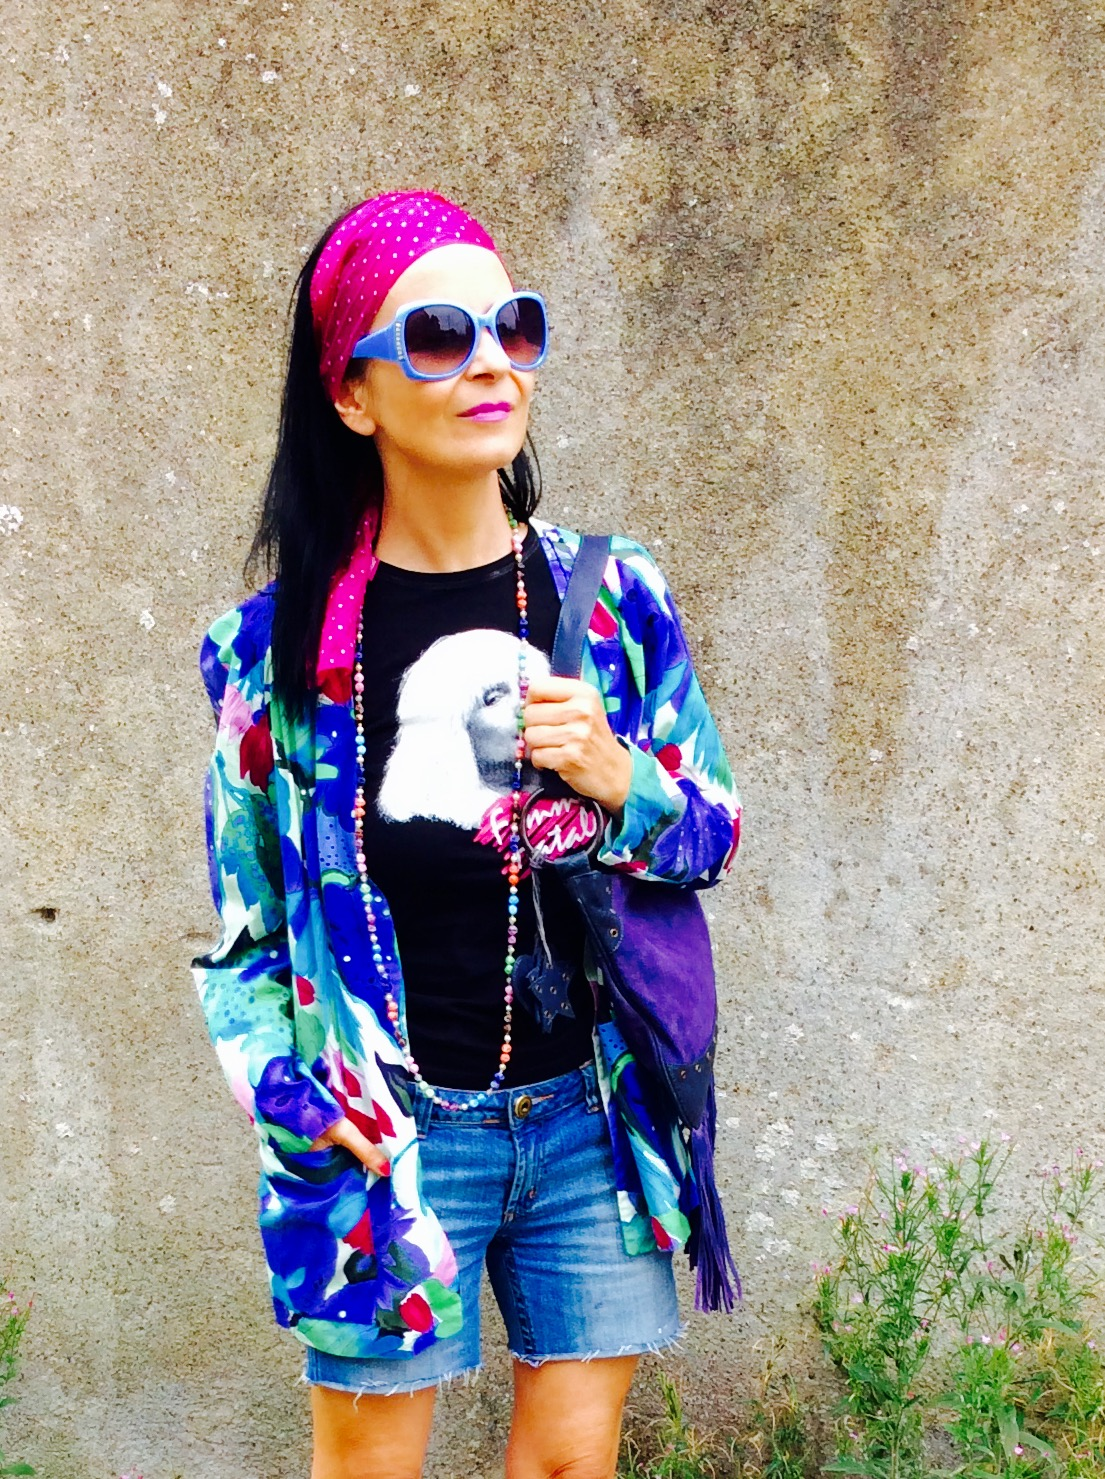 vintage style 80's jacket gives this festival look an individual style!